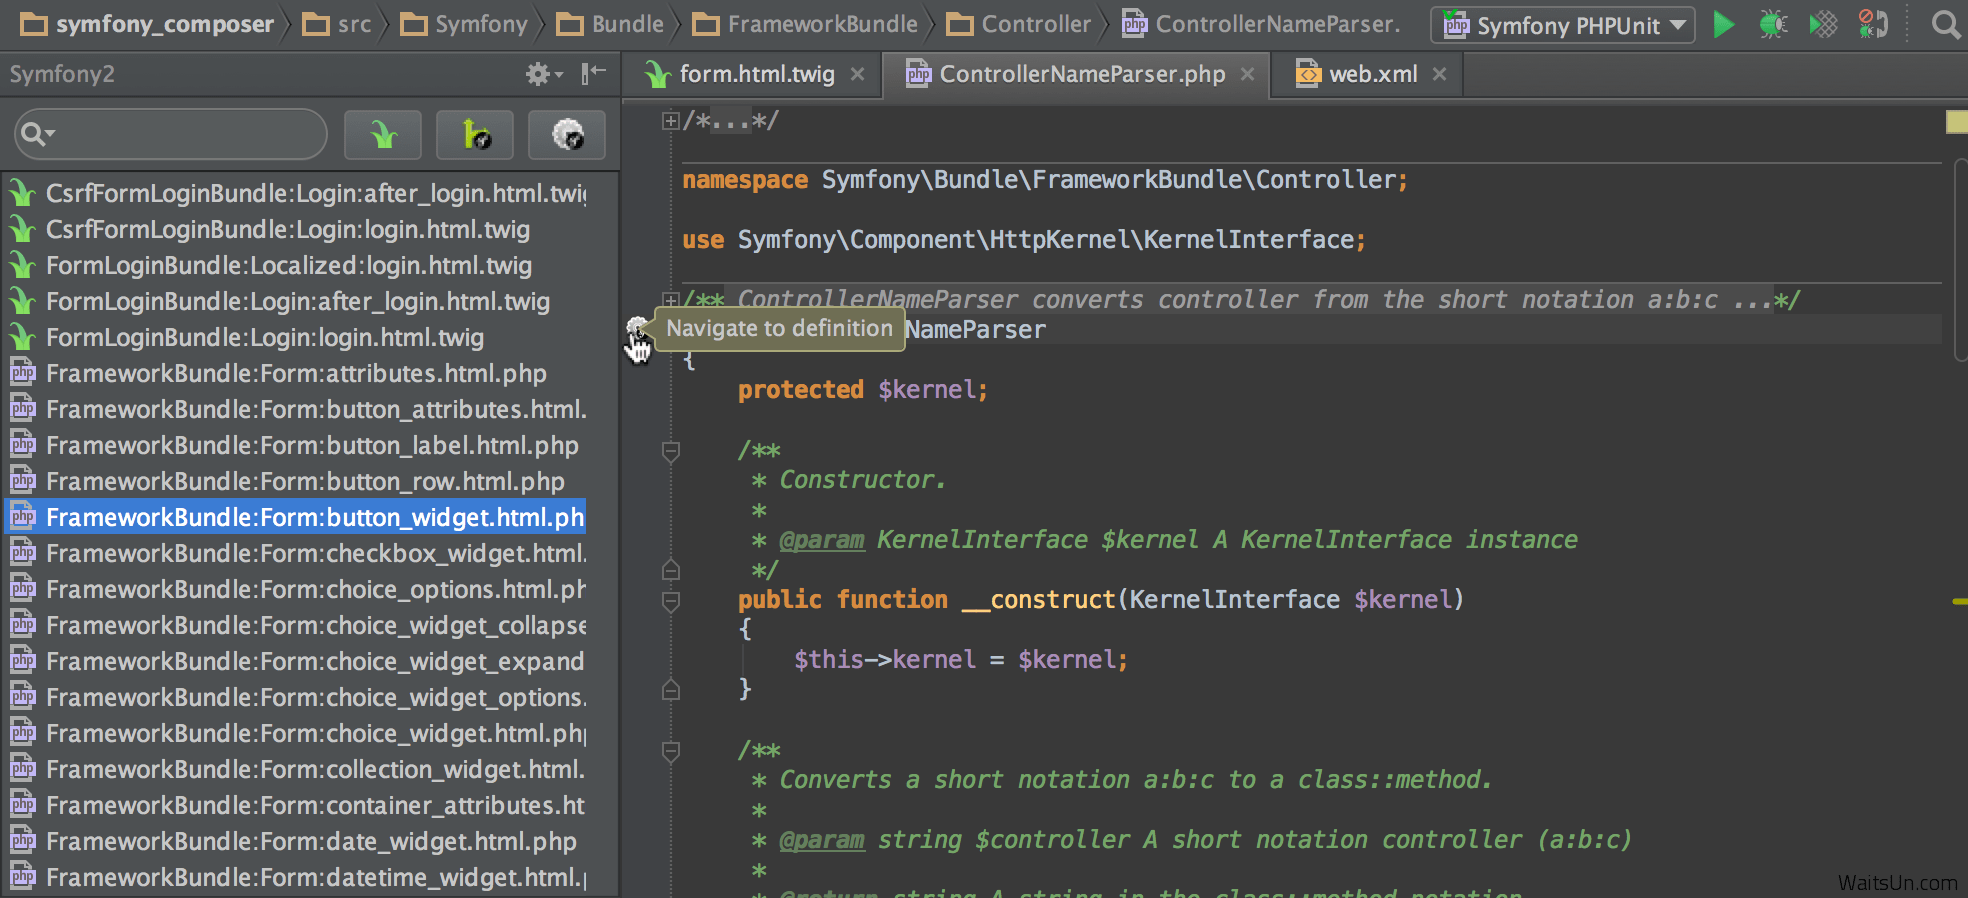 JetBrains PhpStorm for Mac 10.0.2 破解版 – Mac上强大的PHP开发工具